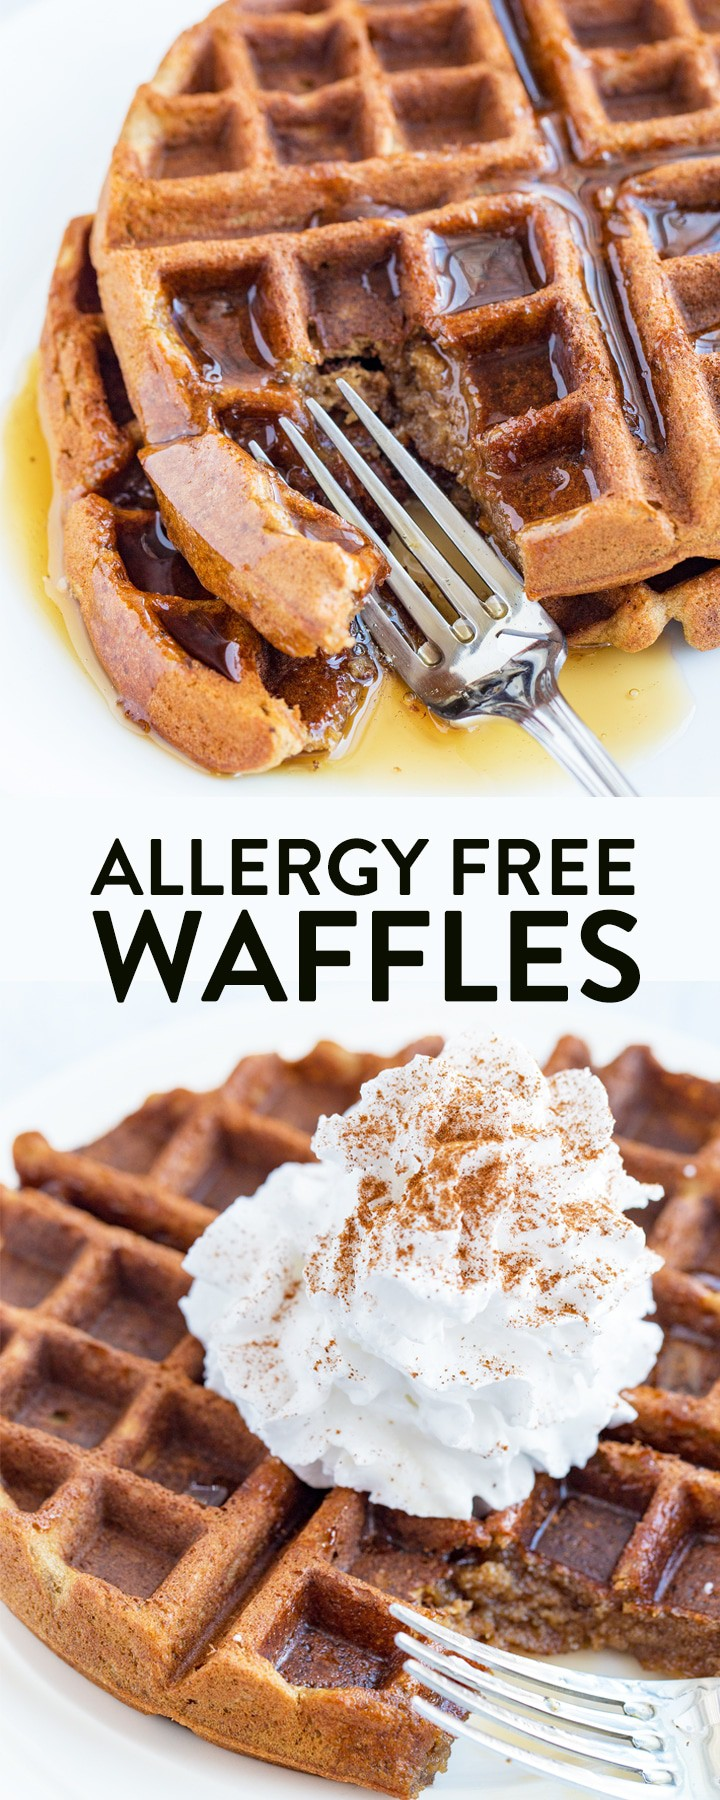 Allergy Free Waffles - these awesome, gluten free waffles are also vegan (dairy free) and so easy to make! They're great for breakfast, for brunch, for picky eaters, and for kids. I love this healthy and allergy friendly twist on Belgian waffles. #thebewitchinkitchen #allergyfreewaffles #glutenfreewaffles #dairyfreewaffles #belgianwaffles #easywaffles #easybreakfastrecipes #glutenfreebreakfast